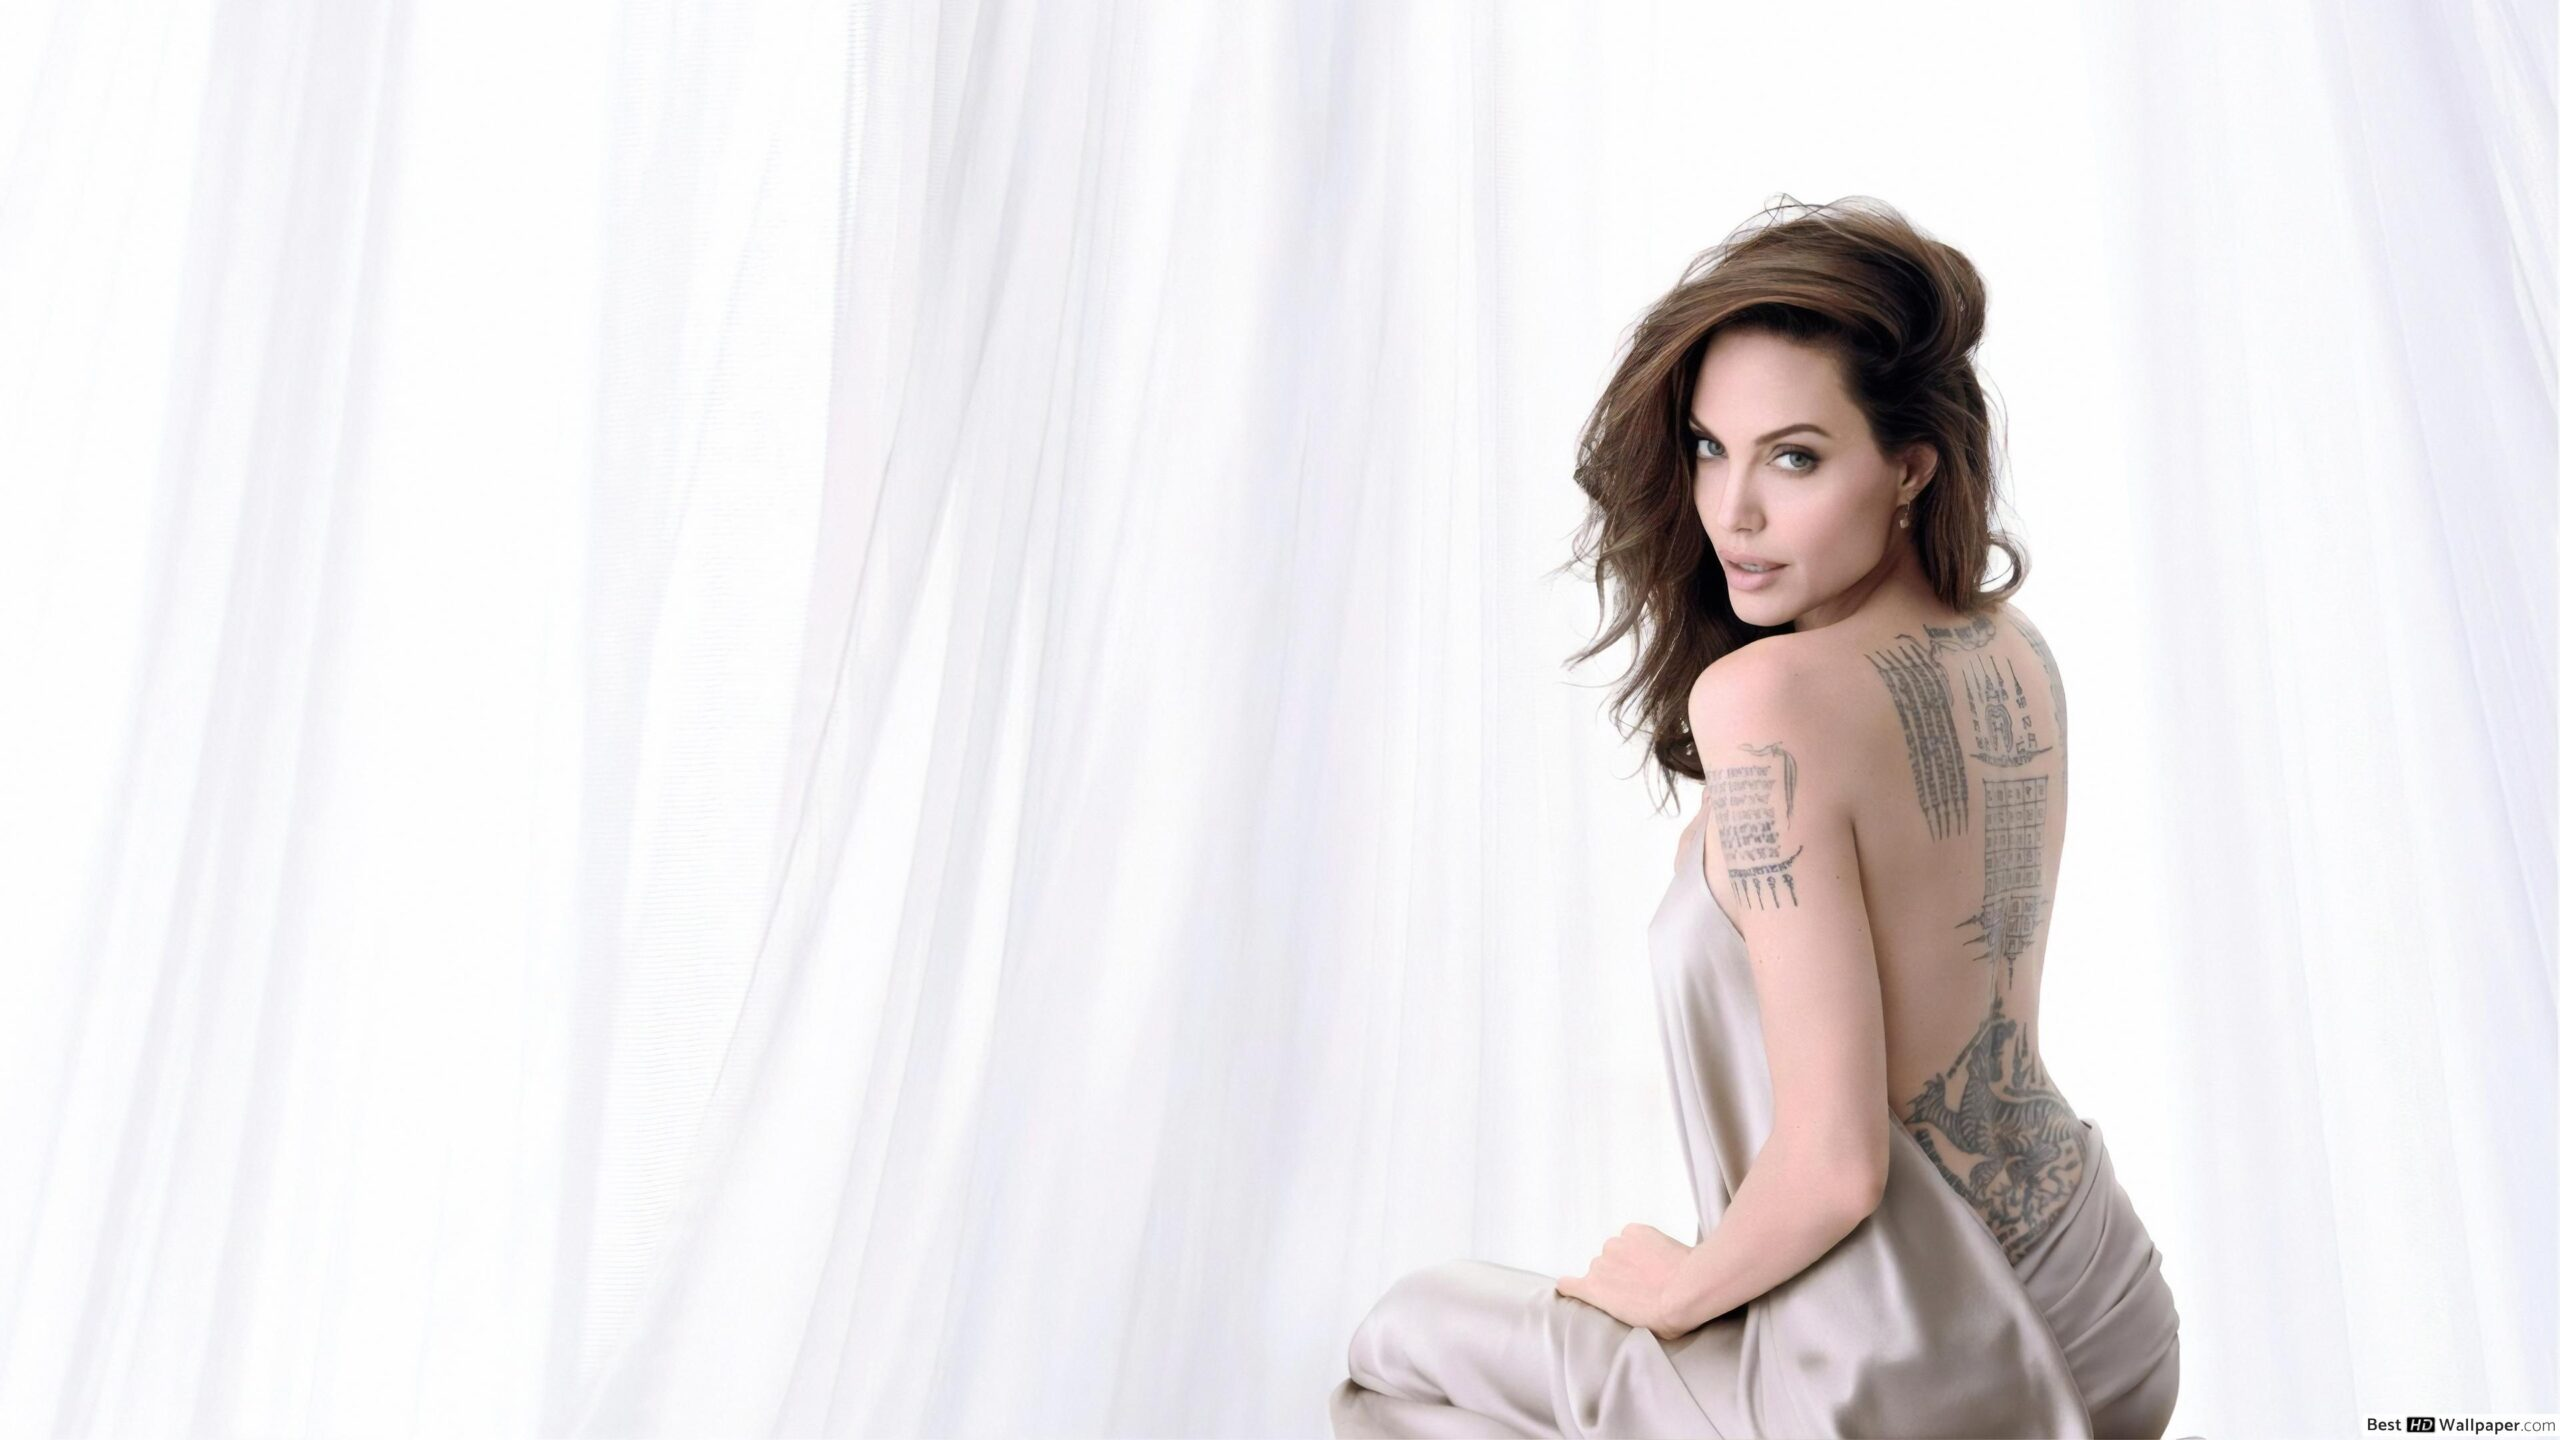 Check out this hot and stunning collection of Angelina Jolie's clicks that will leave you amazed. Her magnificent beauty and stylish dressing always make her the center of attention for the fans around the world. Take a look!